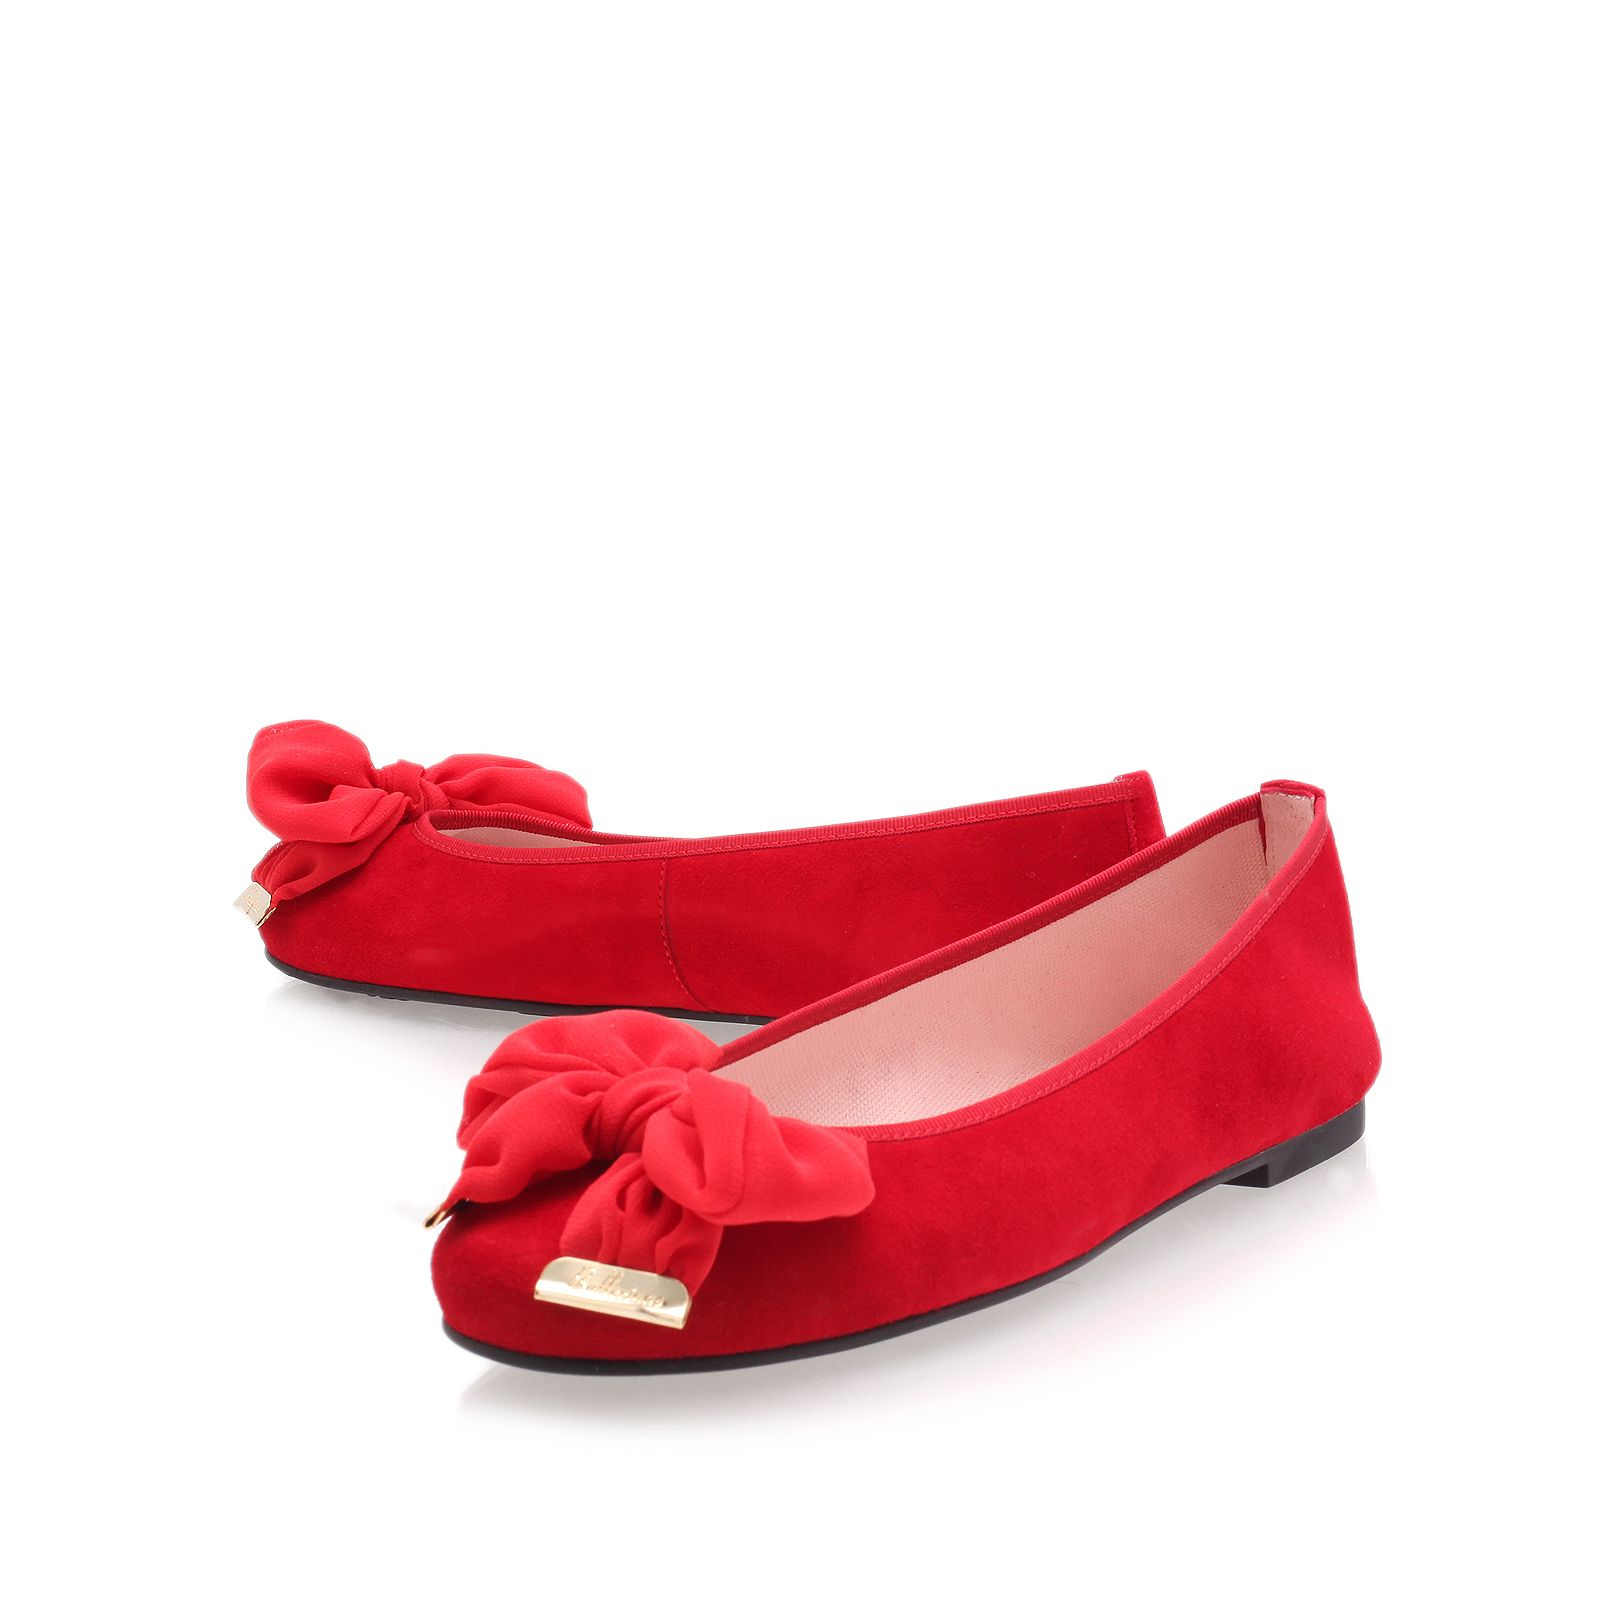 Large bow ballerina shoes